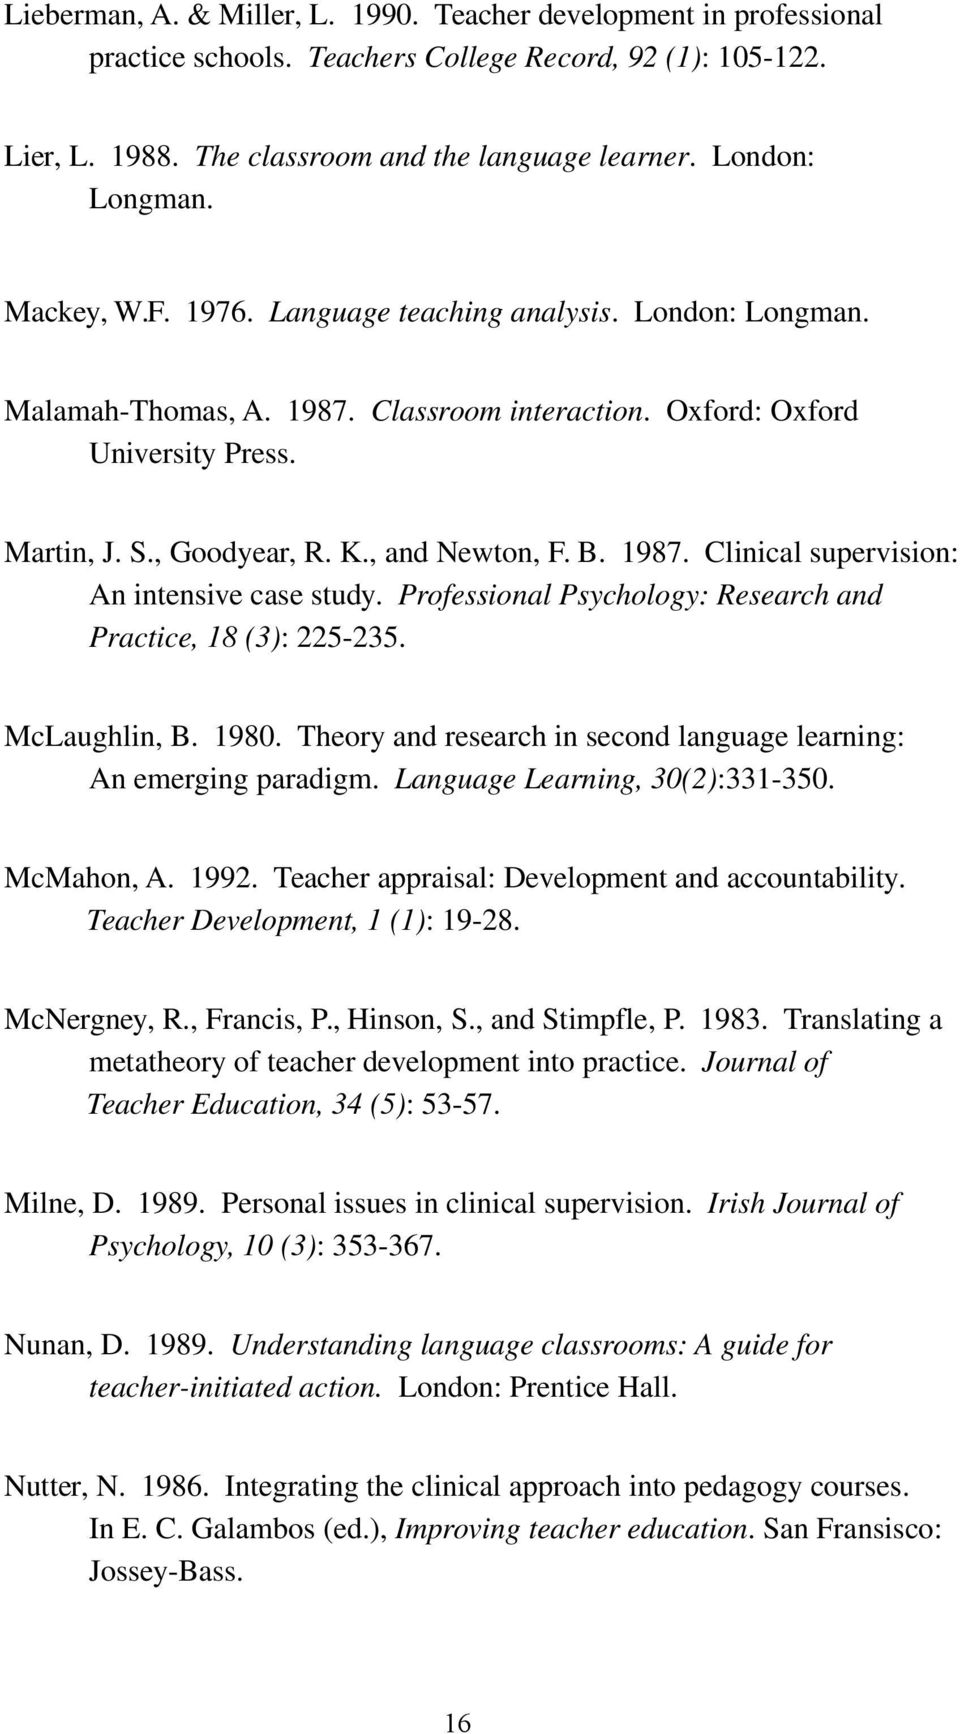 Professional Psychology: Research and Practice, 18 (3): 225-235. McLaughlin, B. 1980. Theory and research in second language learning: An emerging paradigm. Language Learning, 30(2):331-350.